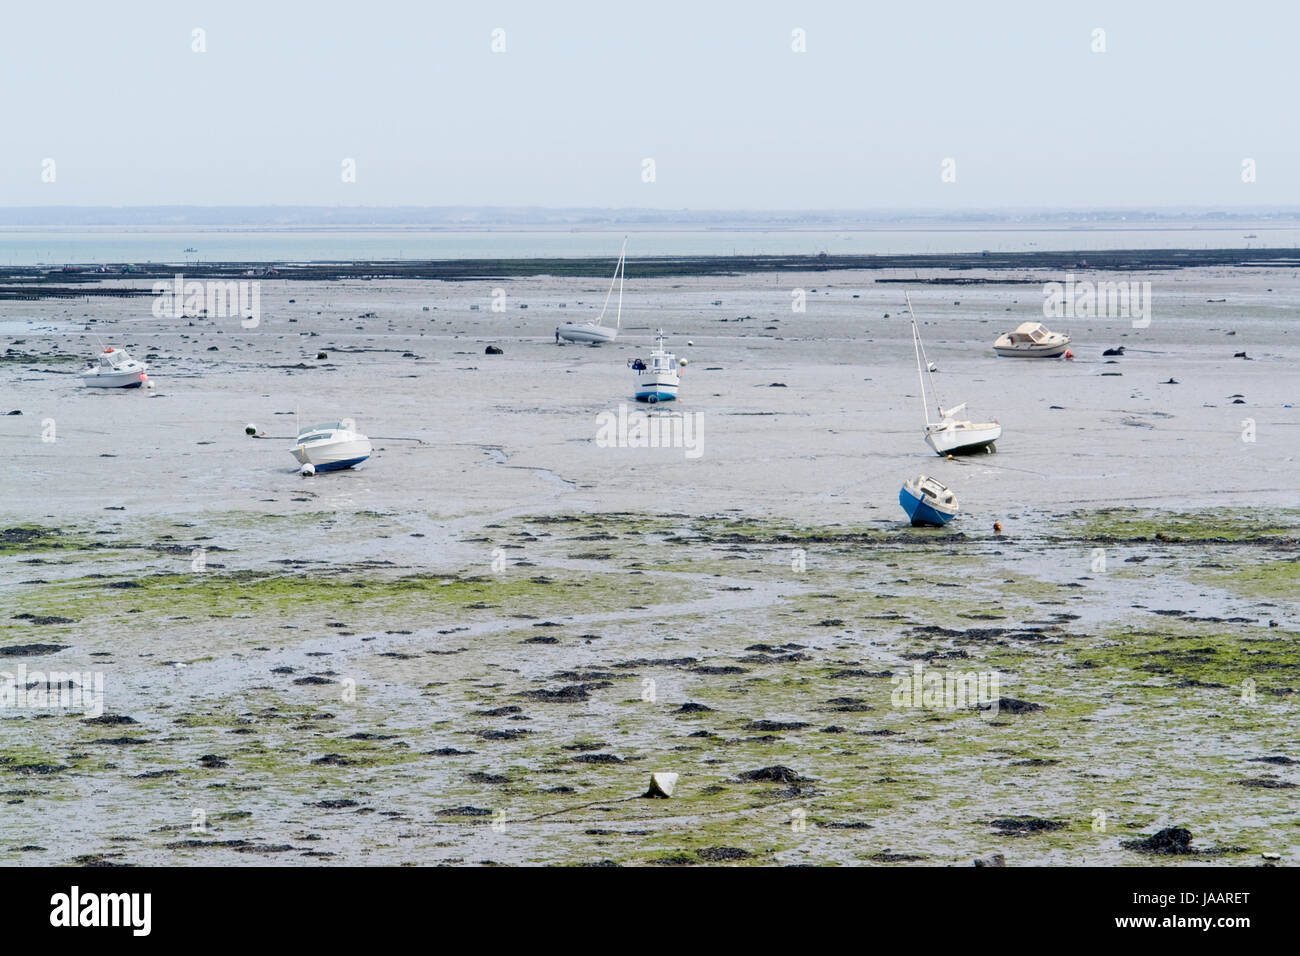 coastal scenery at ebb tide around a town in Brittany named Cancale Stock Photo